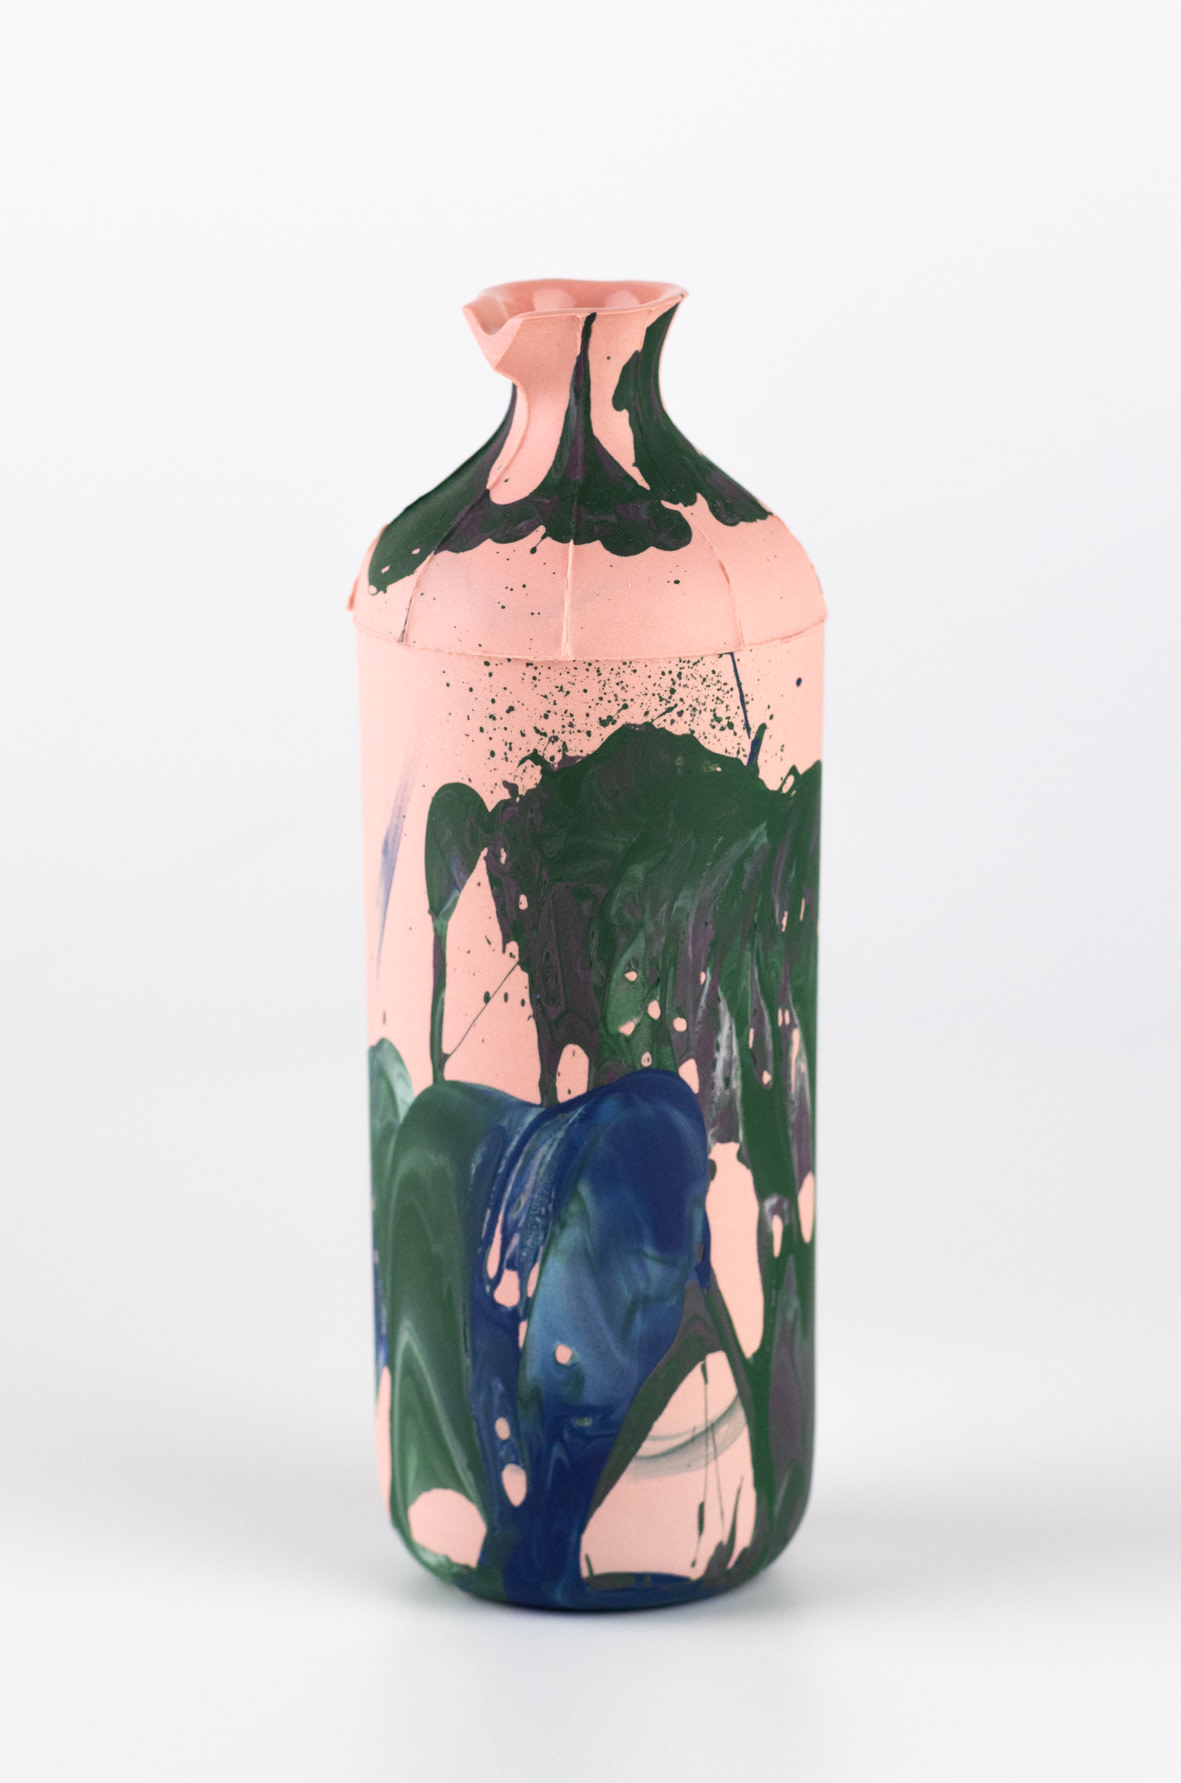 "<span class=""link fancybox-details-link""><a href=""/artists/219-james-pegg/works/6568-james-pegg-tall-bottle-2019/"">View Detail Page</a></span><div class=""artist""><strong>James Pegg</strong></div> <div class=""title""><em>Tall Bottle</em>, 2019</div> <div class=""medium"">action-cast stained porcelain with glazed interior</div> <div class=""dimensions"">h 17cm, dia 6 cm</div><div class=""price"">£120.00</div><div class=""copyright_line"">OwnArt: £ 12 x 10 Months, 0% APR </div>"